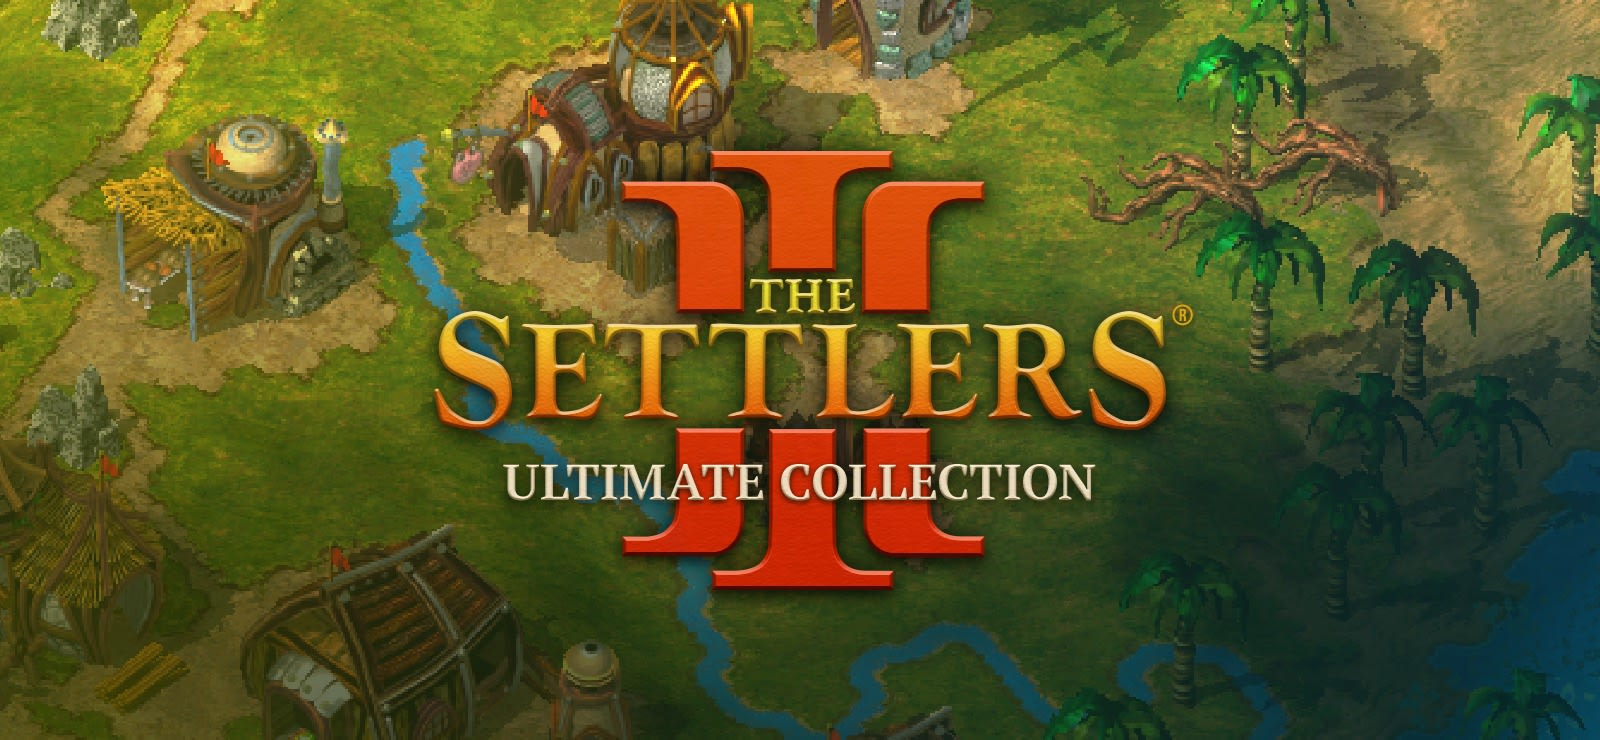 Settlers 3: Ultimate Collection varies-with-device